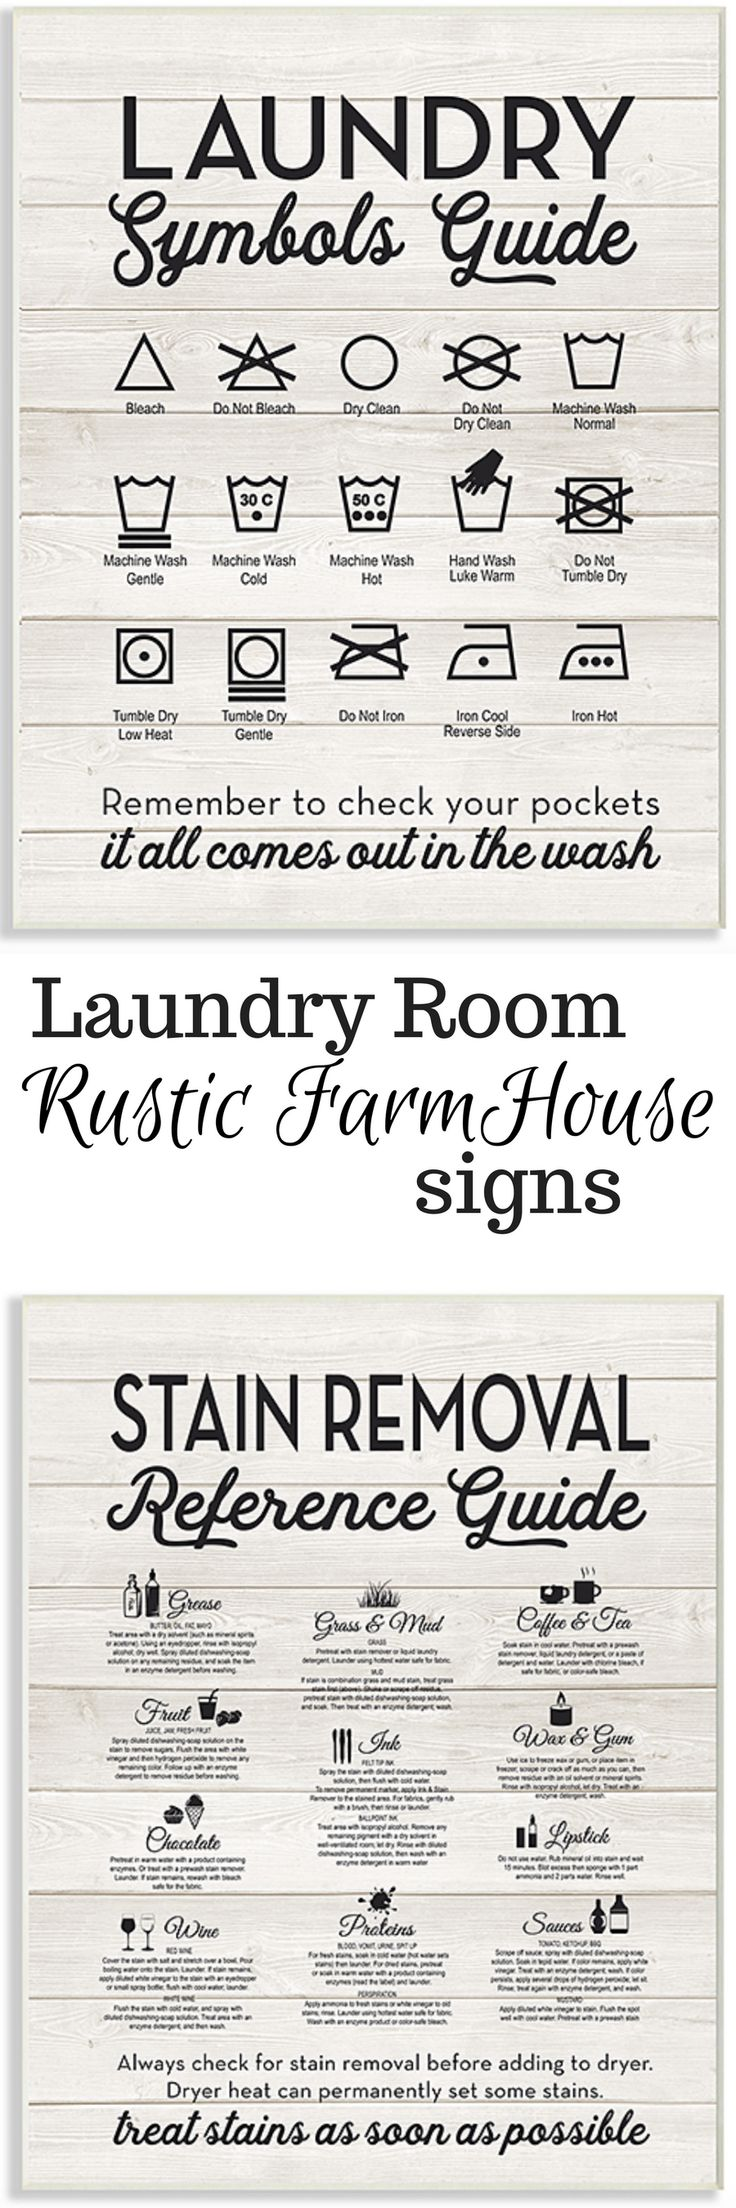 Utility Room Sign Fascinating Best 25 Laundry Room Signs Ideas On Pinterest  Laundry Signs Design Ideas